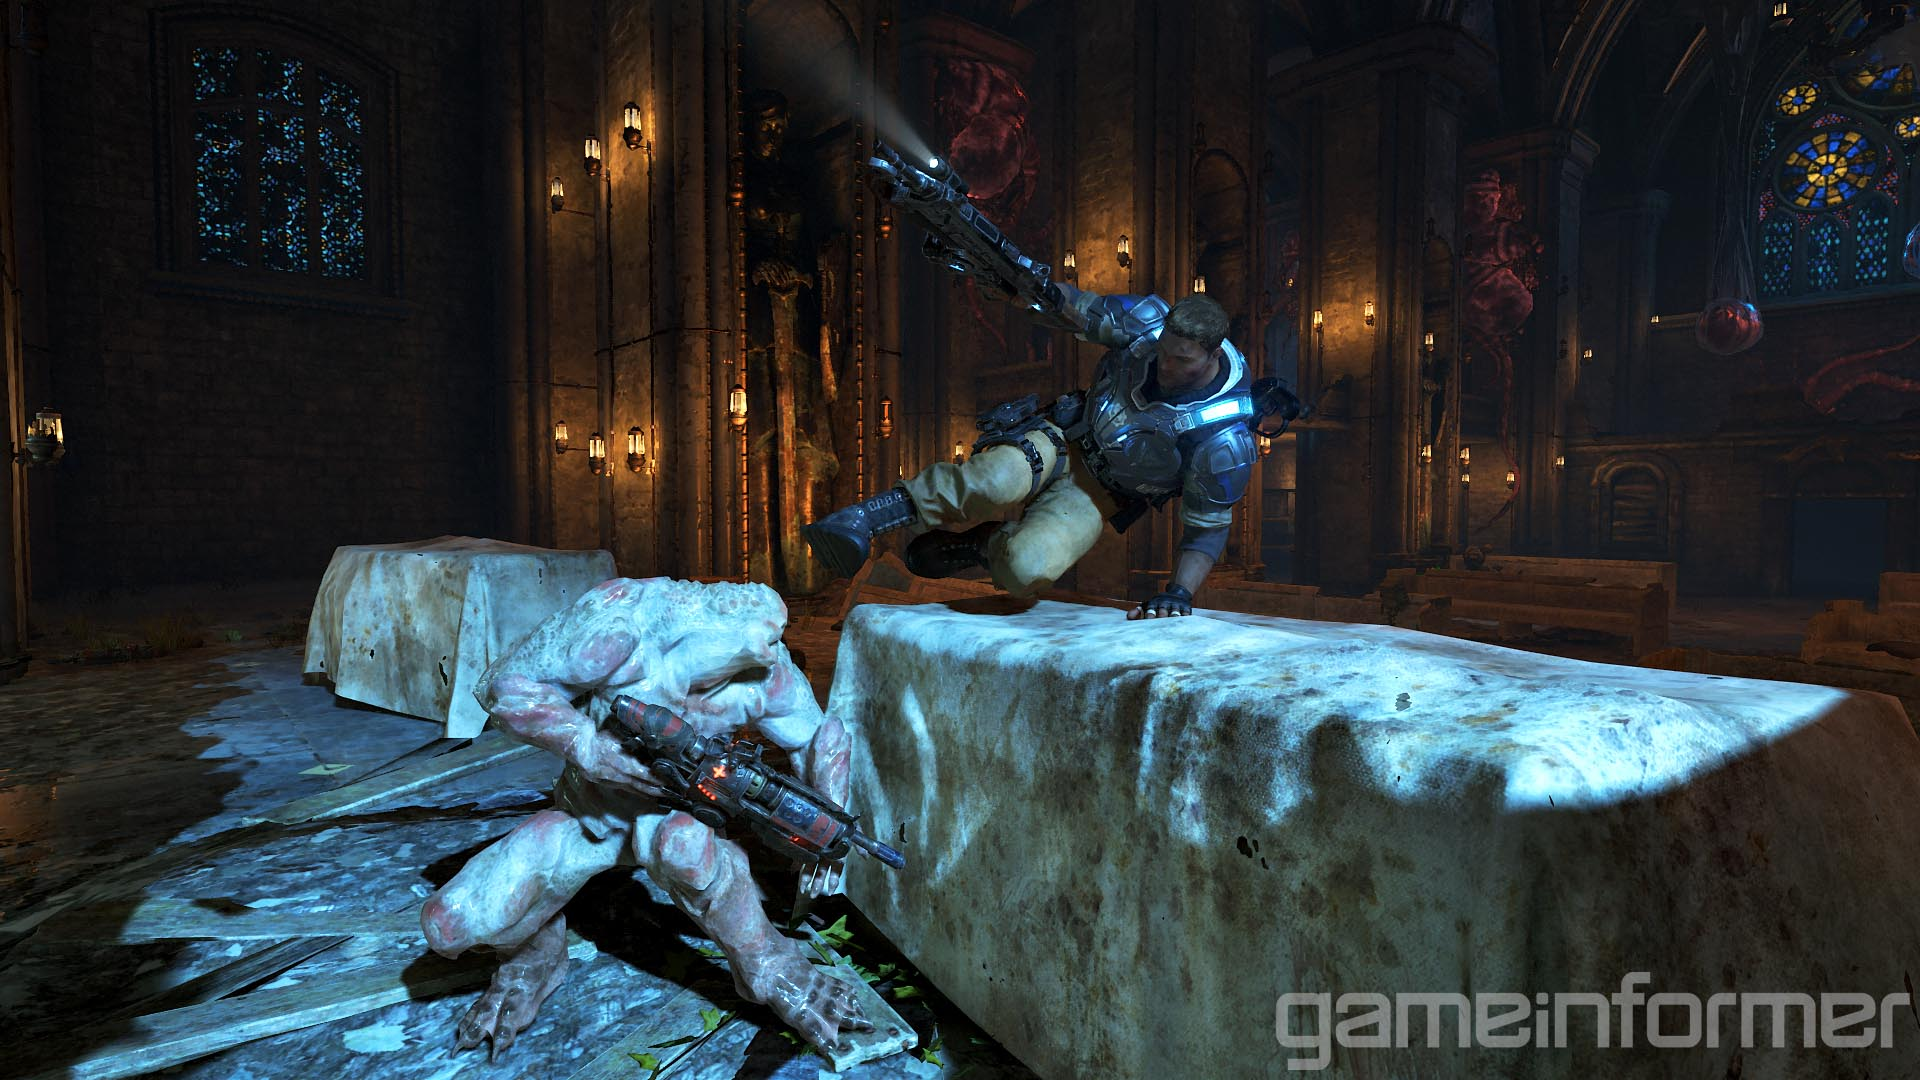 Introduced in Gears of War 3, you could vault over cover and give the locust a damn good kick to the face. Looks like they'll be bringing it back along with a few new addition perhaps?